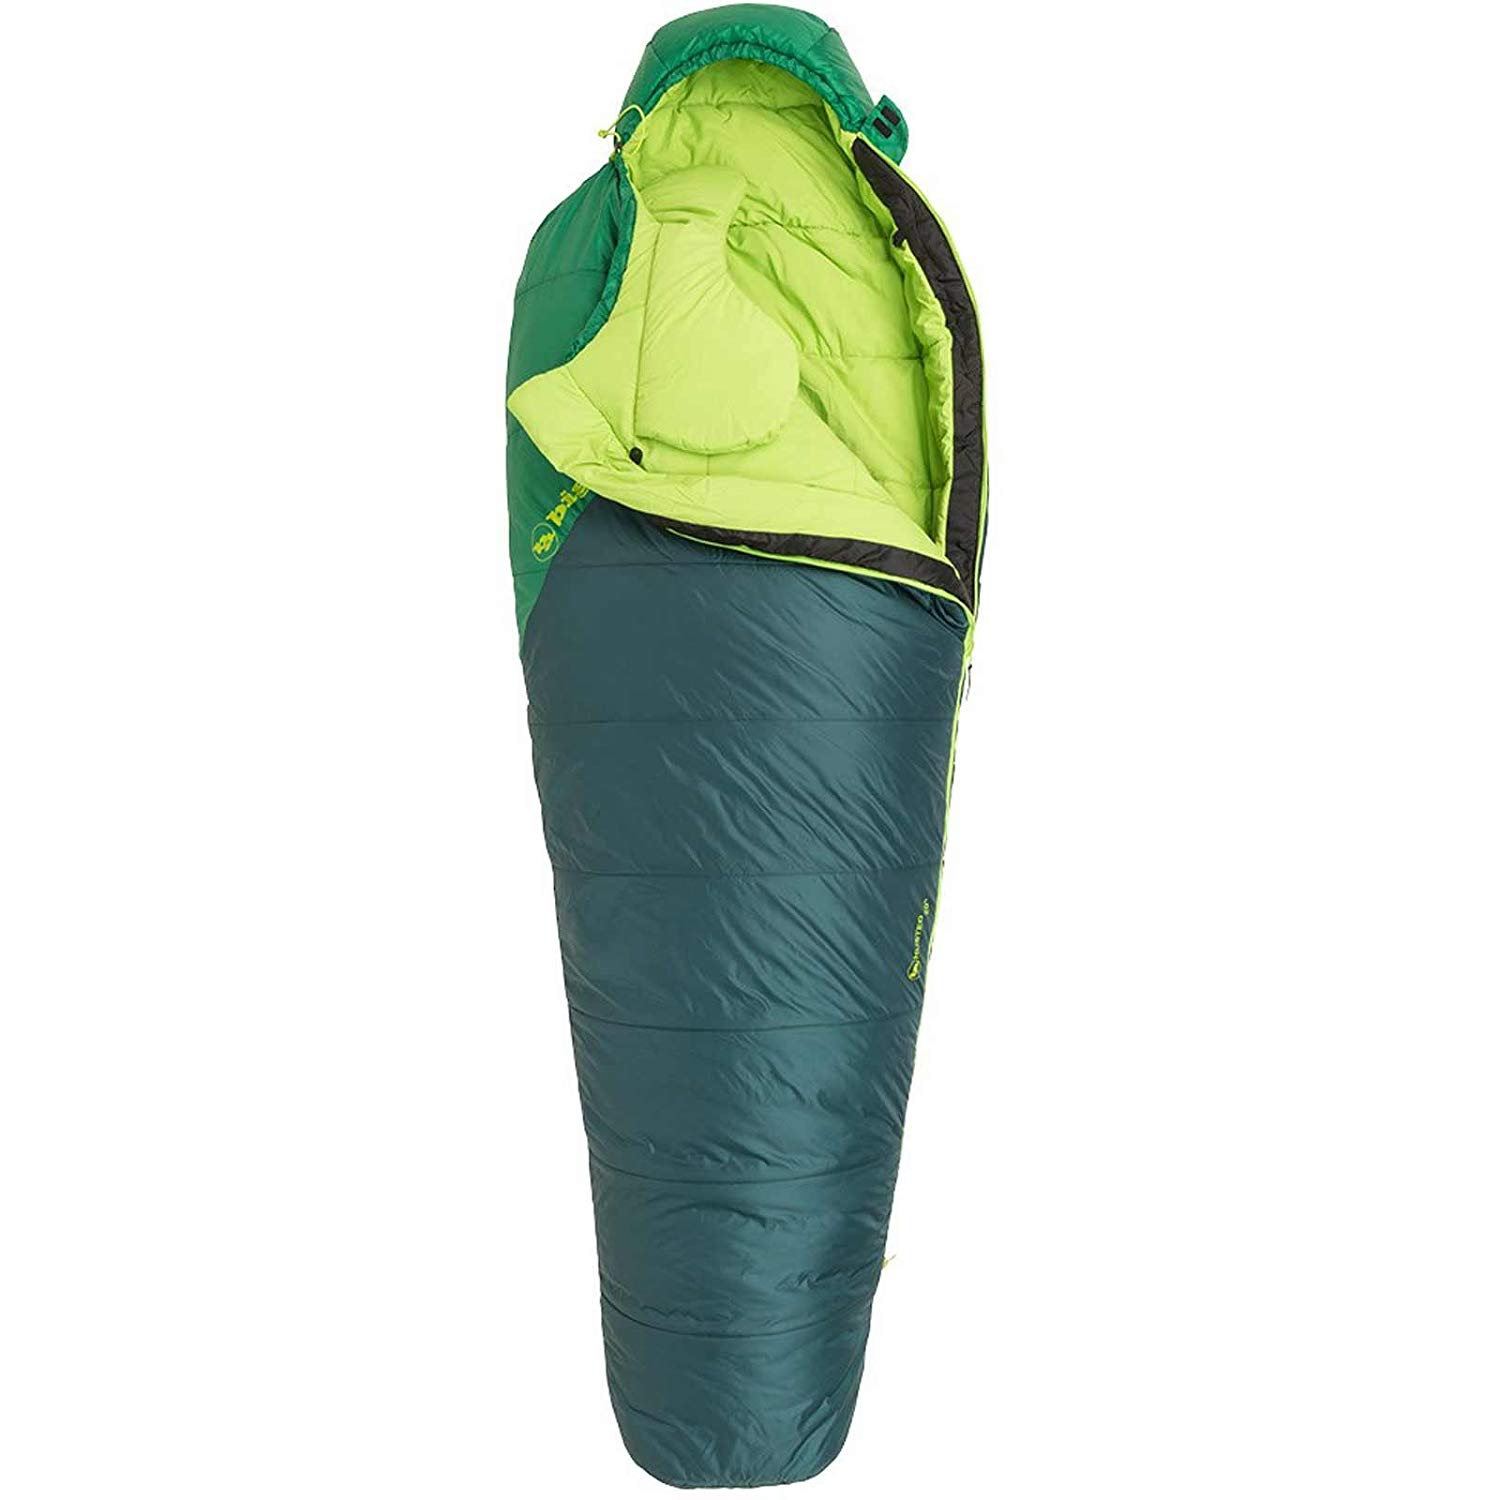 An image of Big Agnes Husted Men's 20 Degree Single Lightweight Polyester 6 Ft. 6 in. Mummy Sleeping Bag